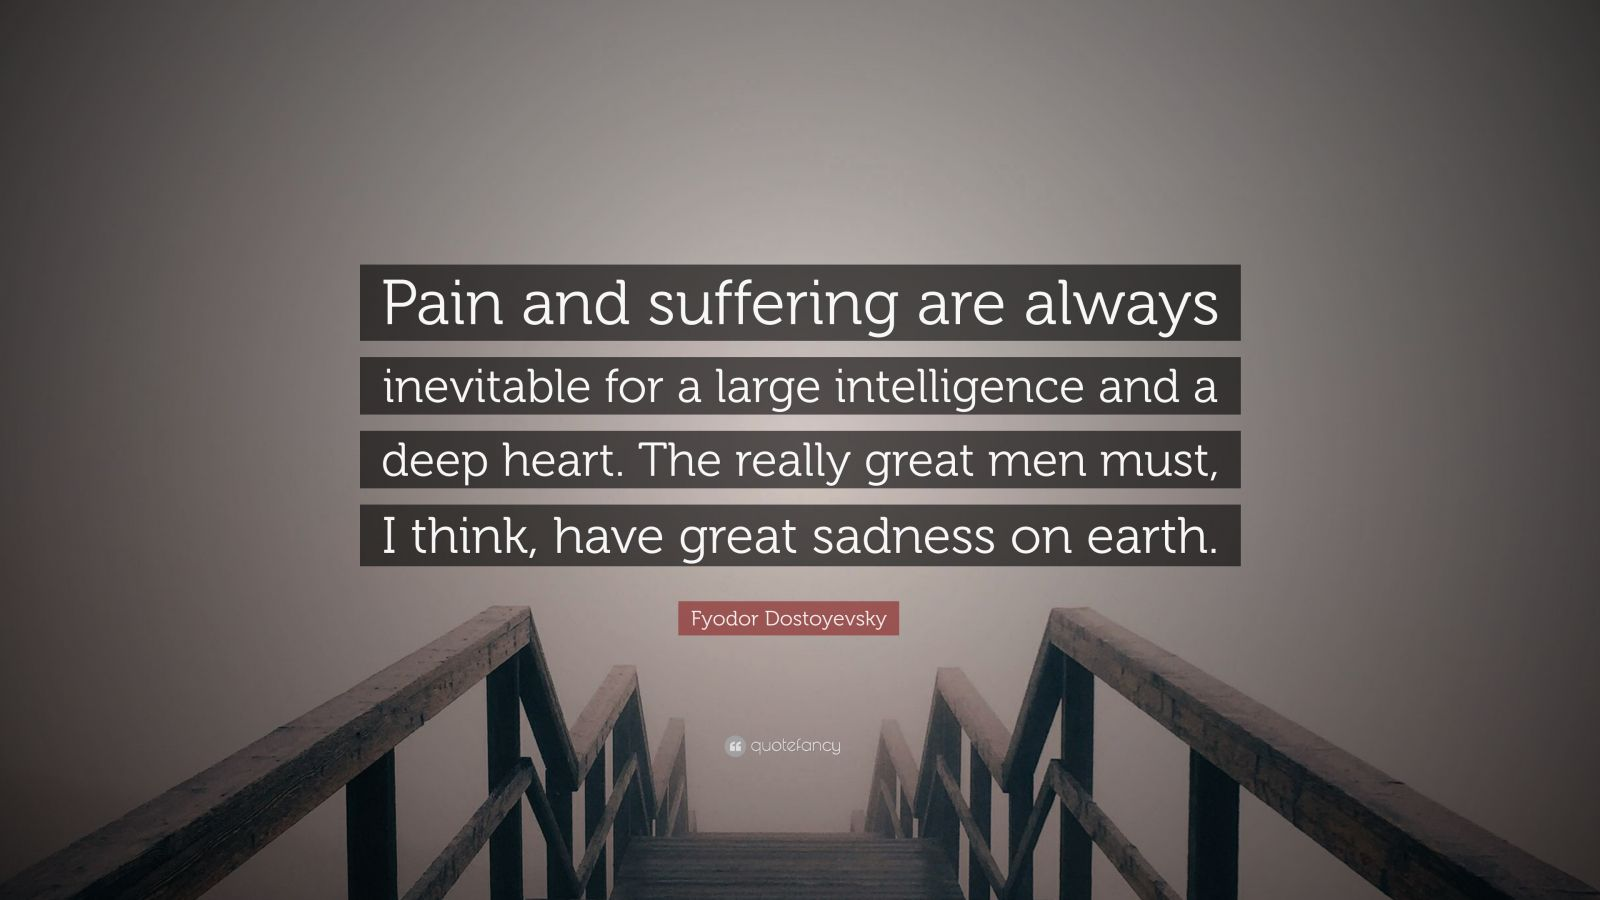 """Fyodor Dostoyevsky Quote: """"Pain and suffering are always inevitable for a large intelligence and a deep heart. The really great men must, I think, have great sadness on earth."""""""